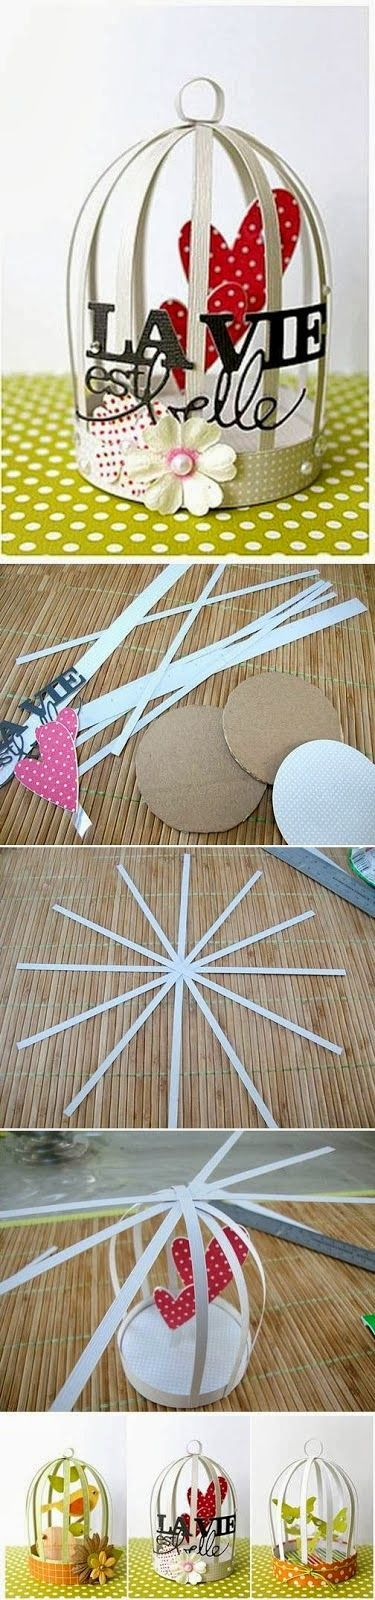 My DIY Projects: How To Make Mini Decorative Cage. Could use a round lid for the base.: